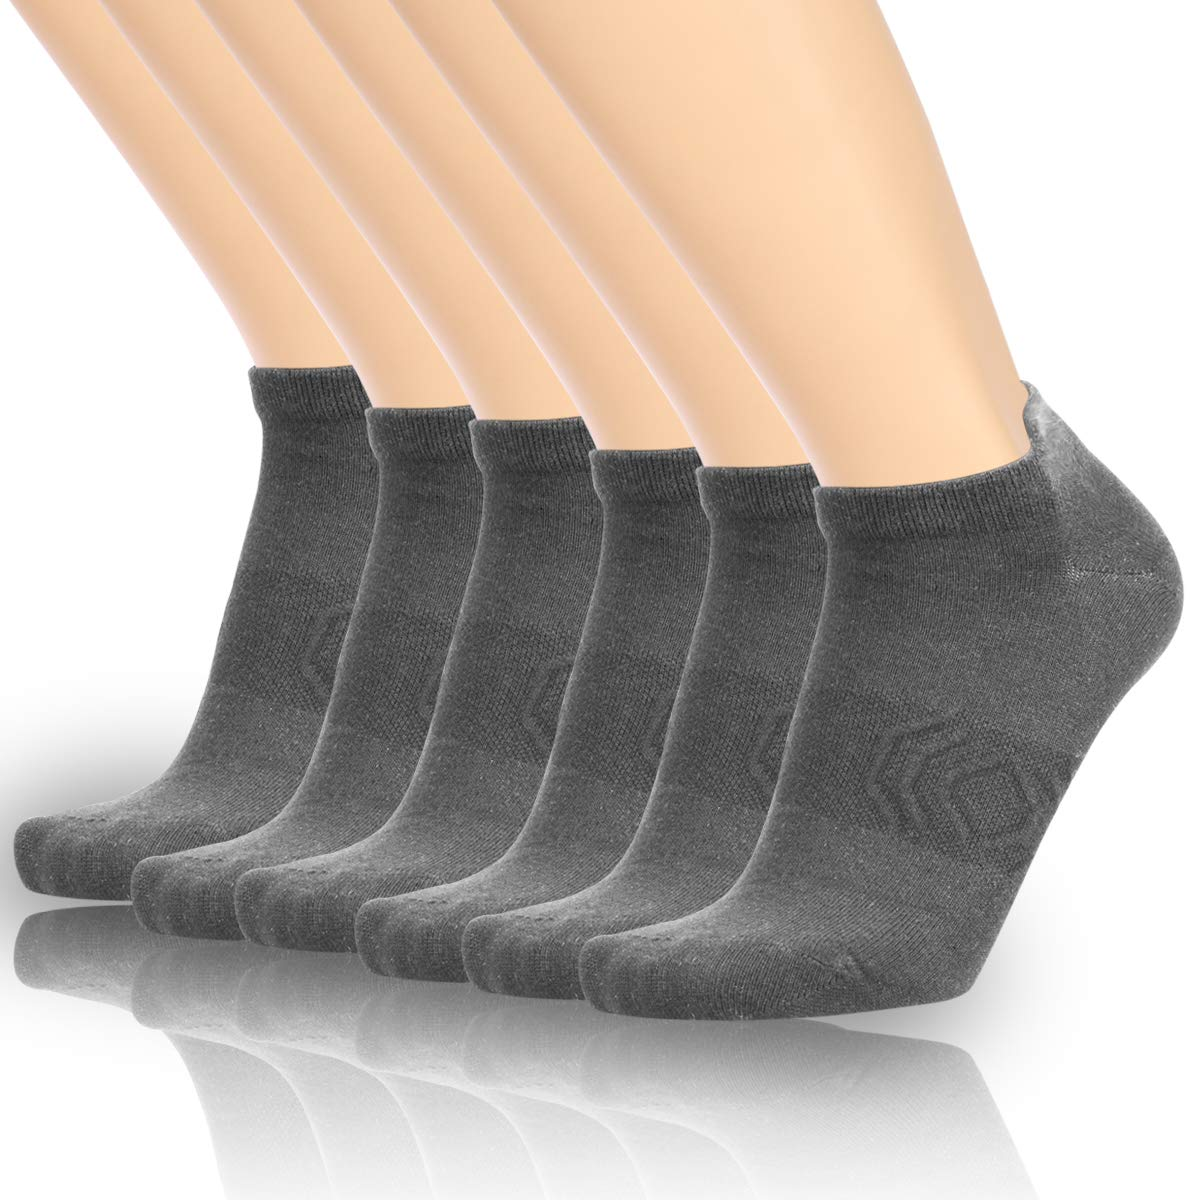 Zisuper Womens Mens Low Cut Ankle Athletic Socks No Show Breathable Cotton Tab Sock 6 Pack